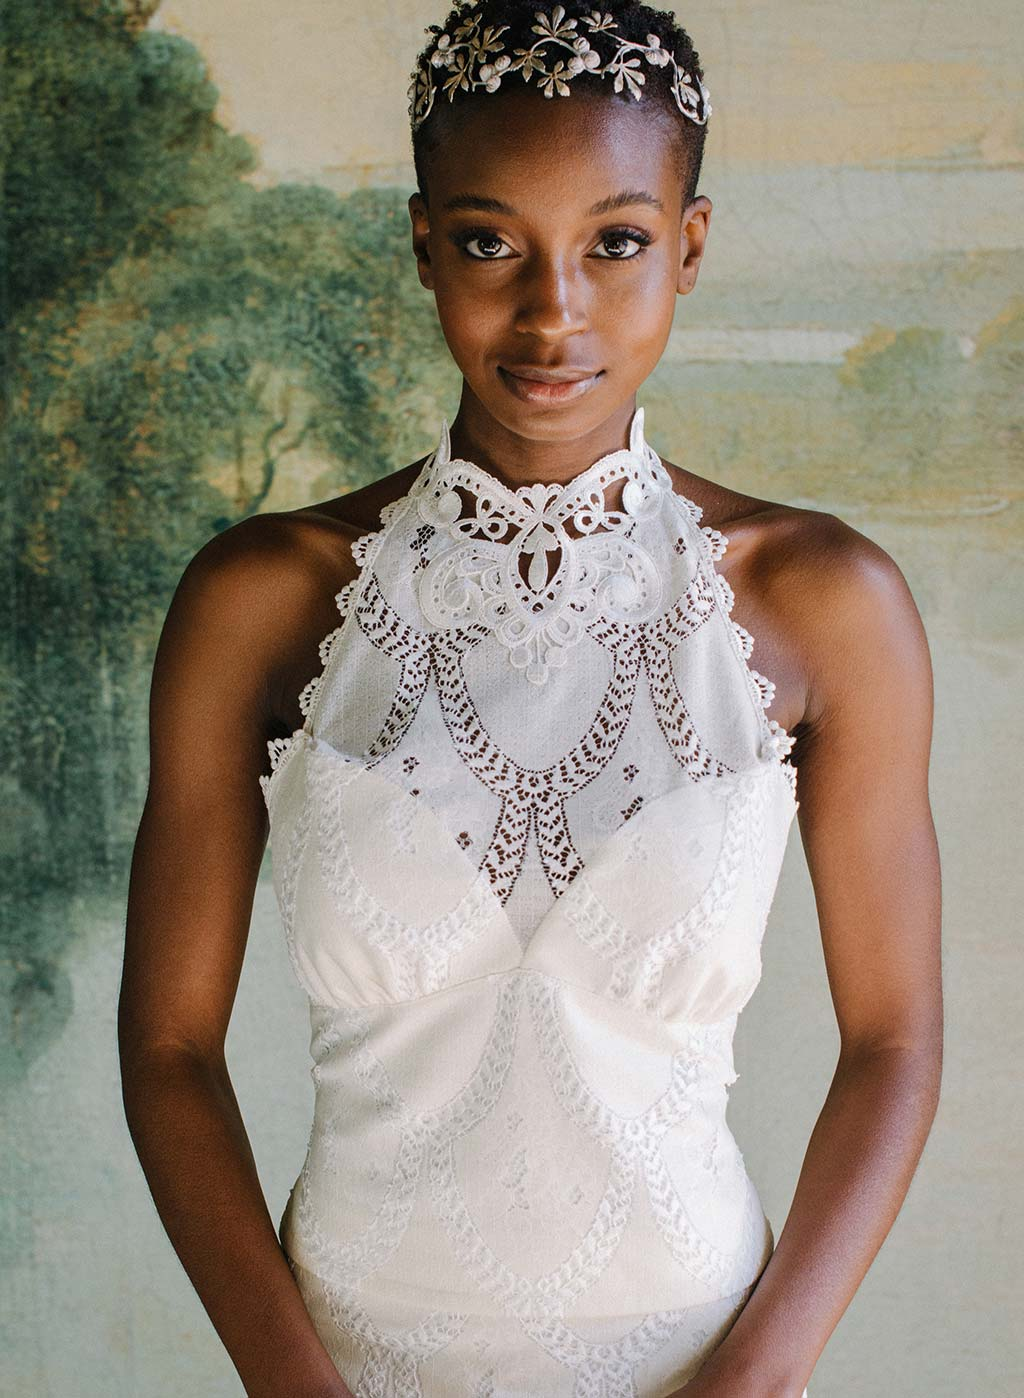 Lace Halter Top Claire Pettibone Ready to Wed